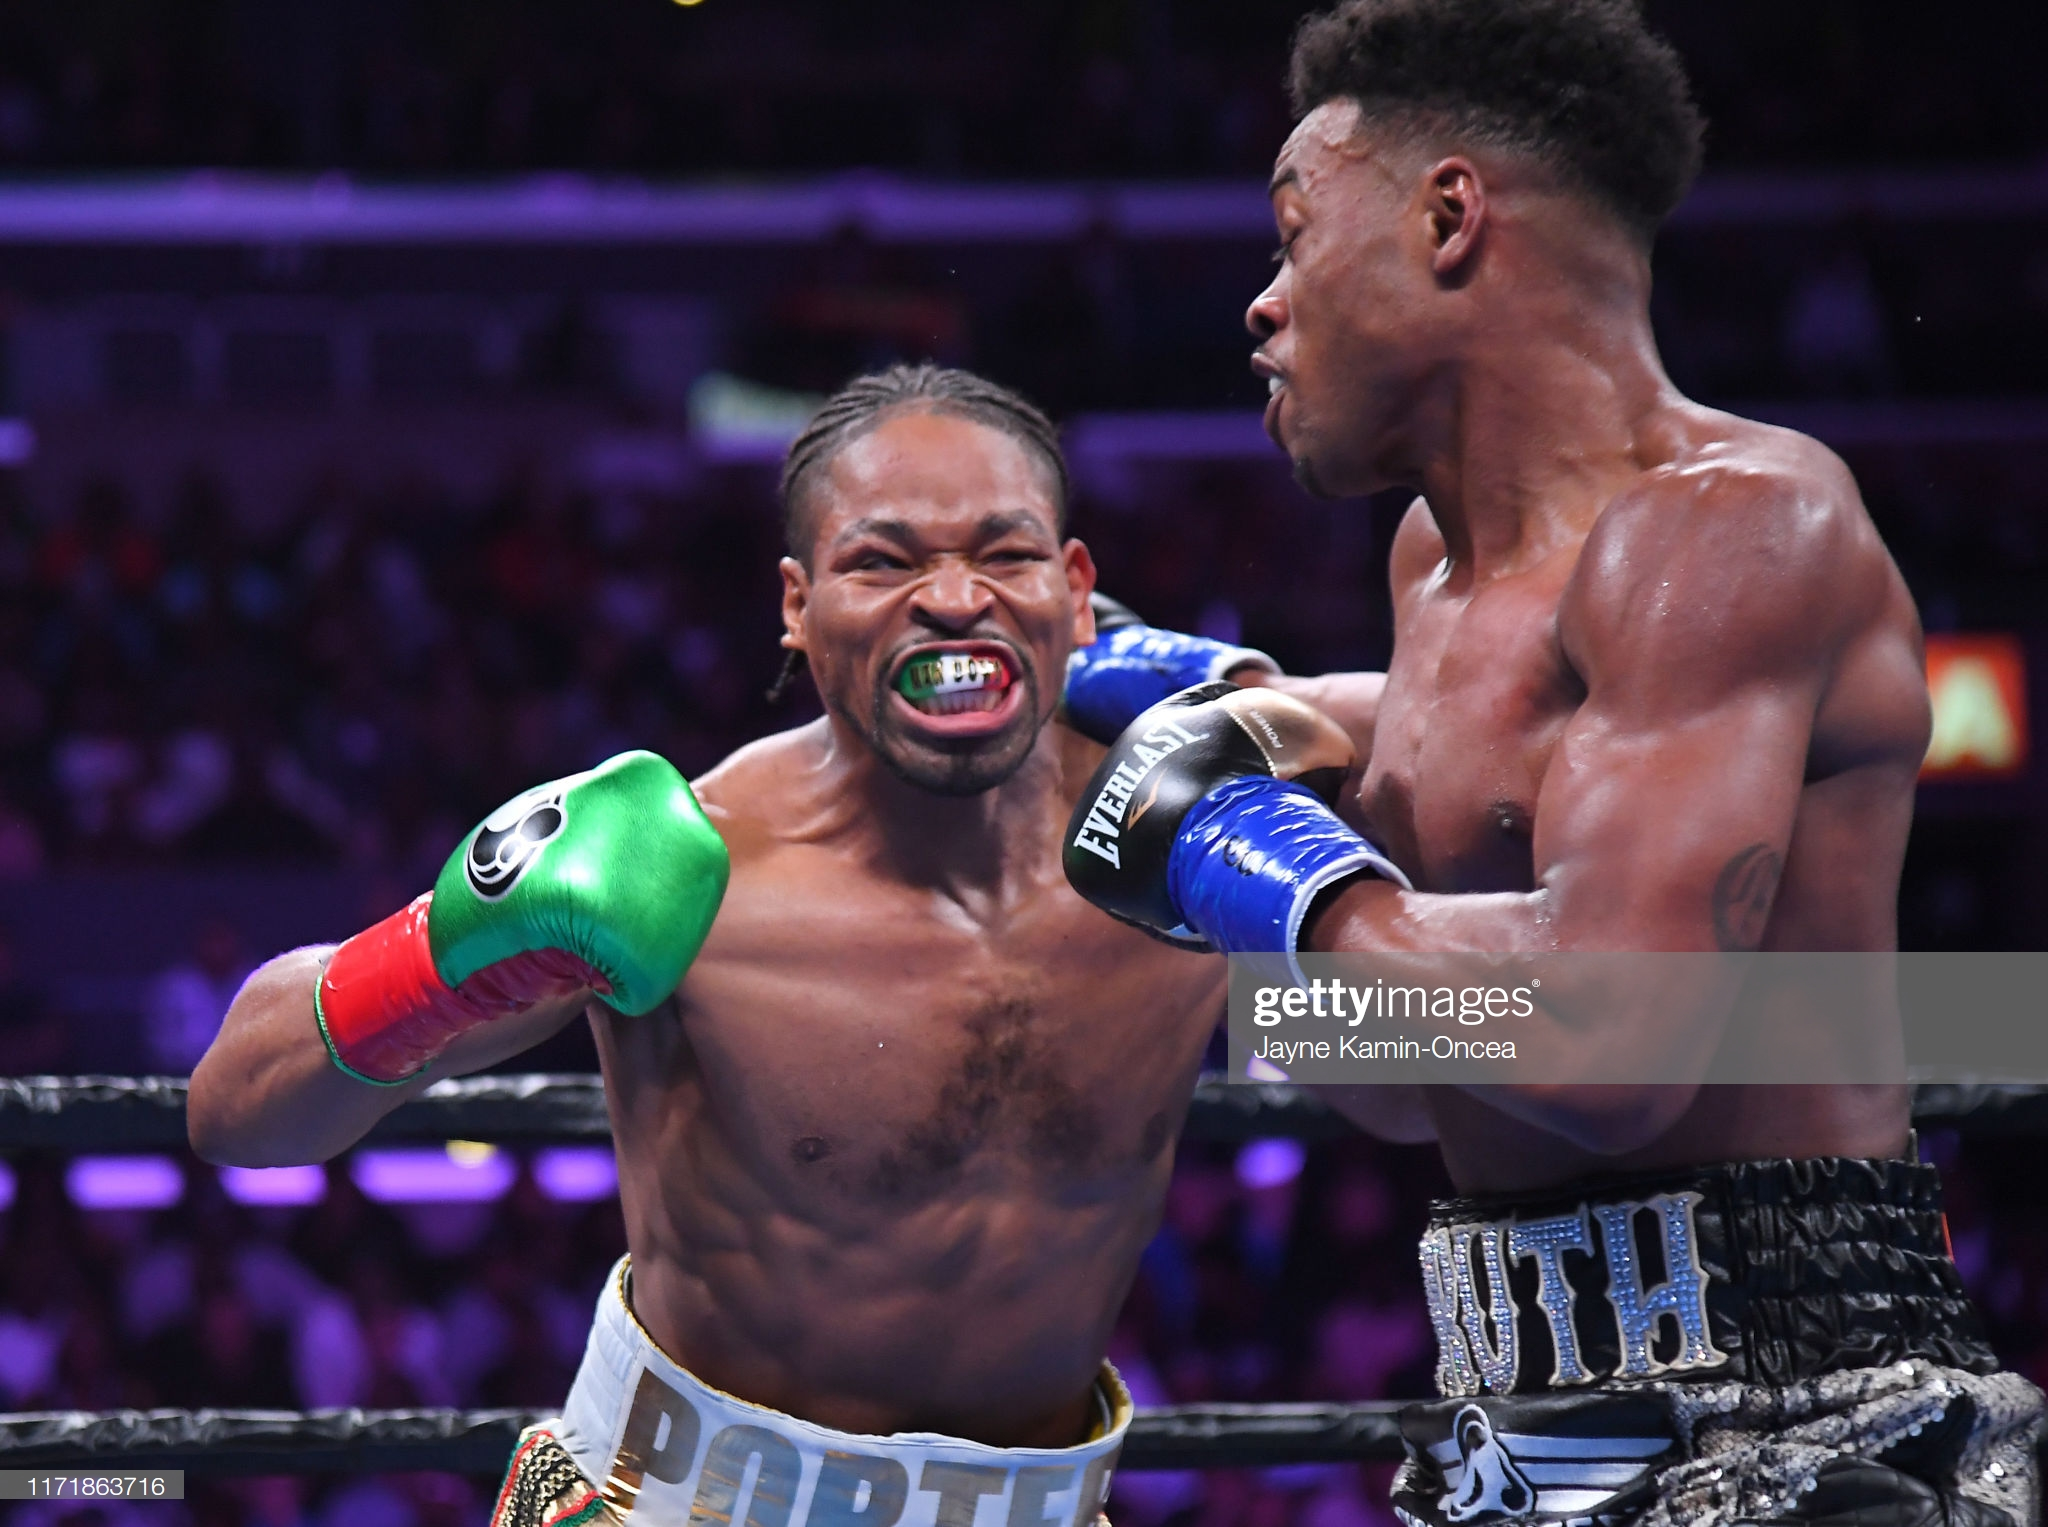 Boxing welterweight Erroll Spence Jr. punches Shawn Porter in the face during their IBF & WBC World Welterweight Championship fight